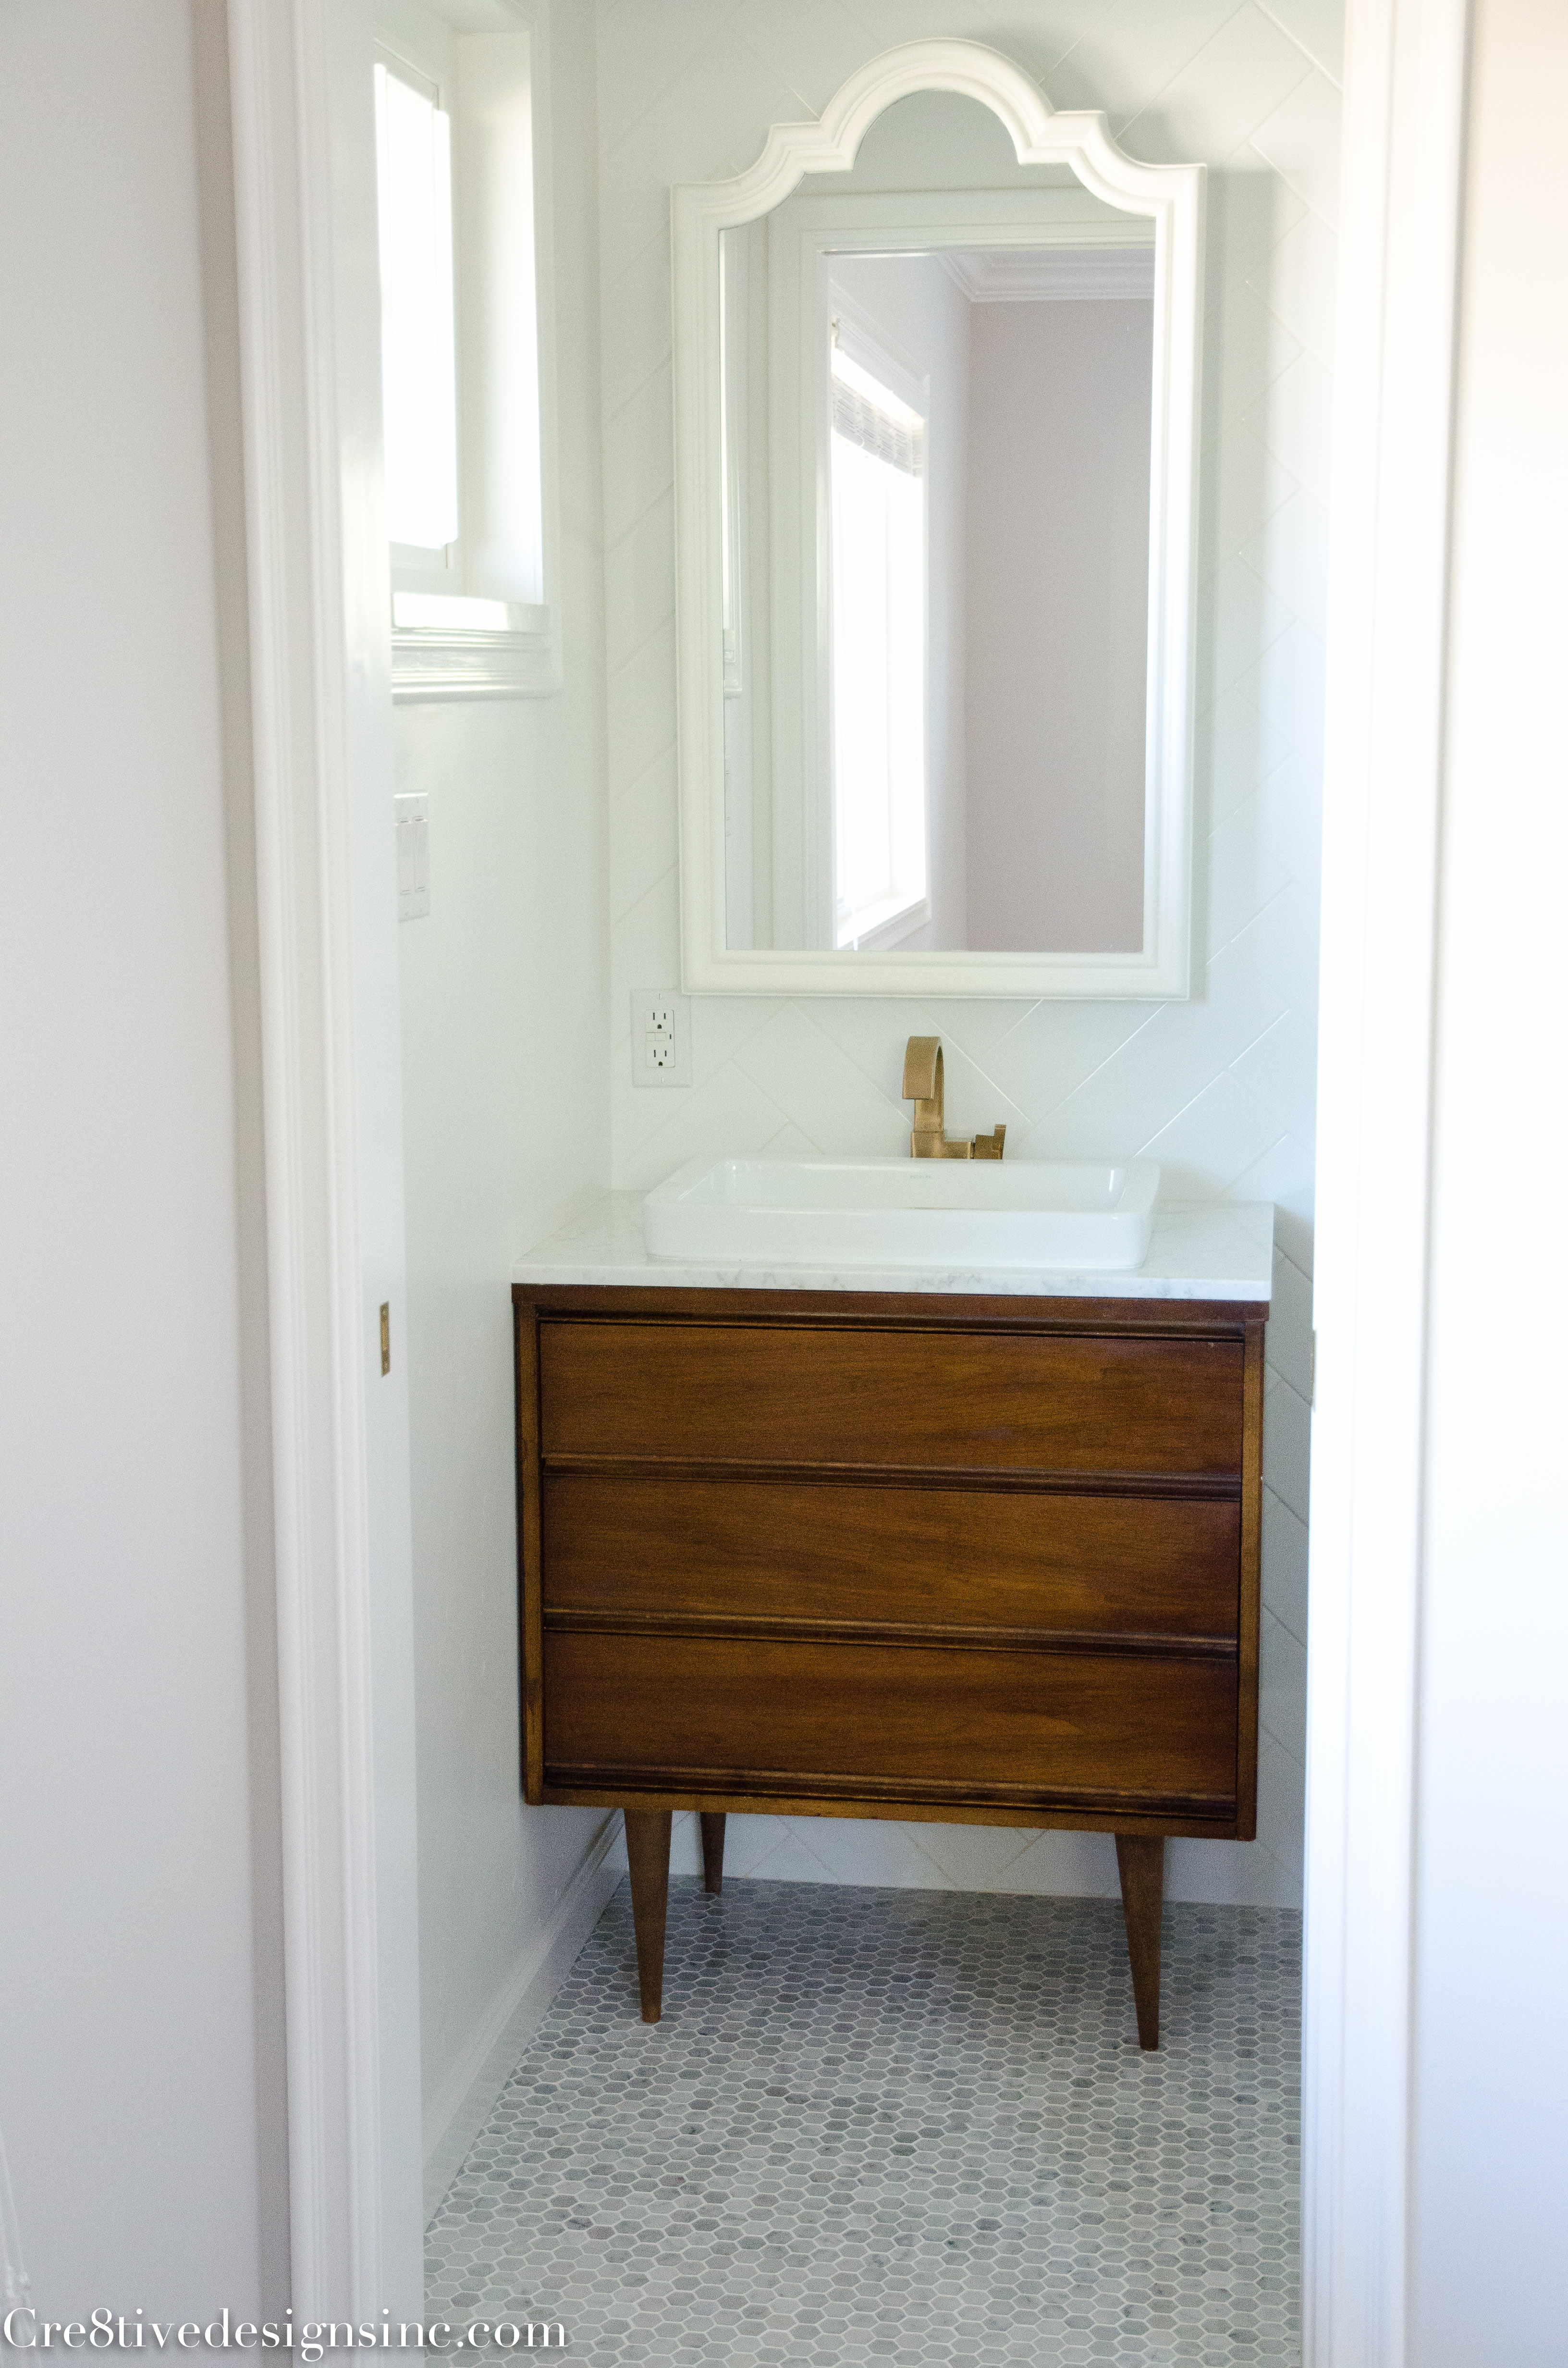 Image of: Designing A Tiny Bathroom Cre8tive Designs Inc